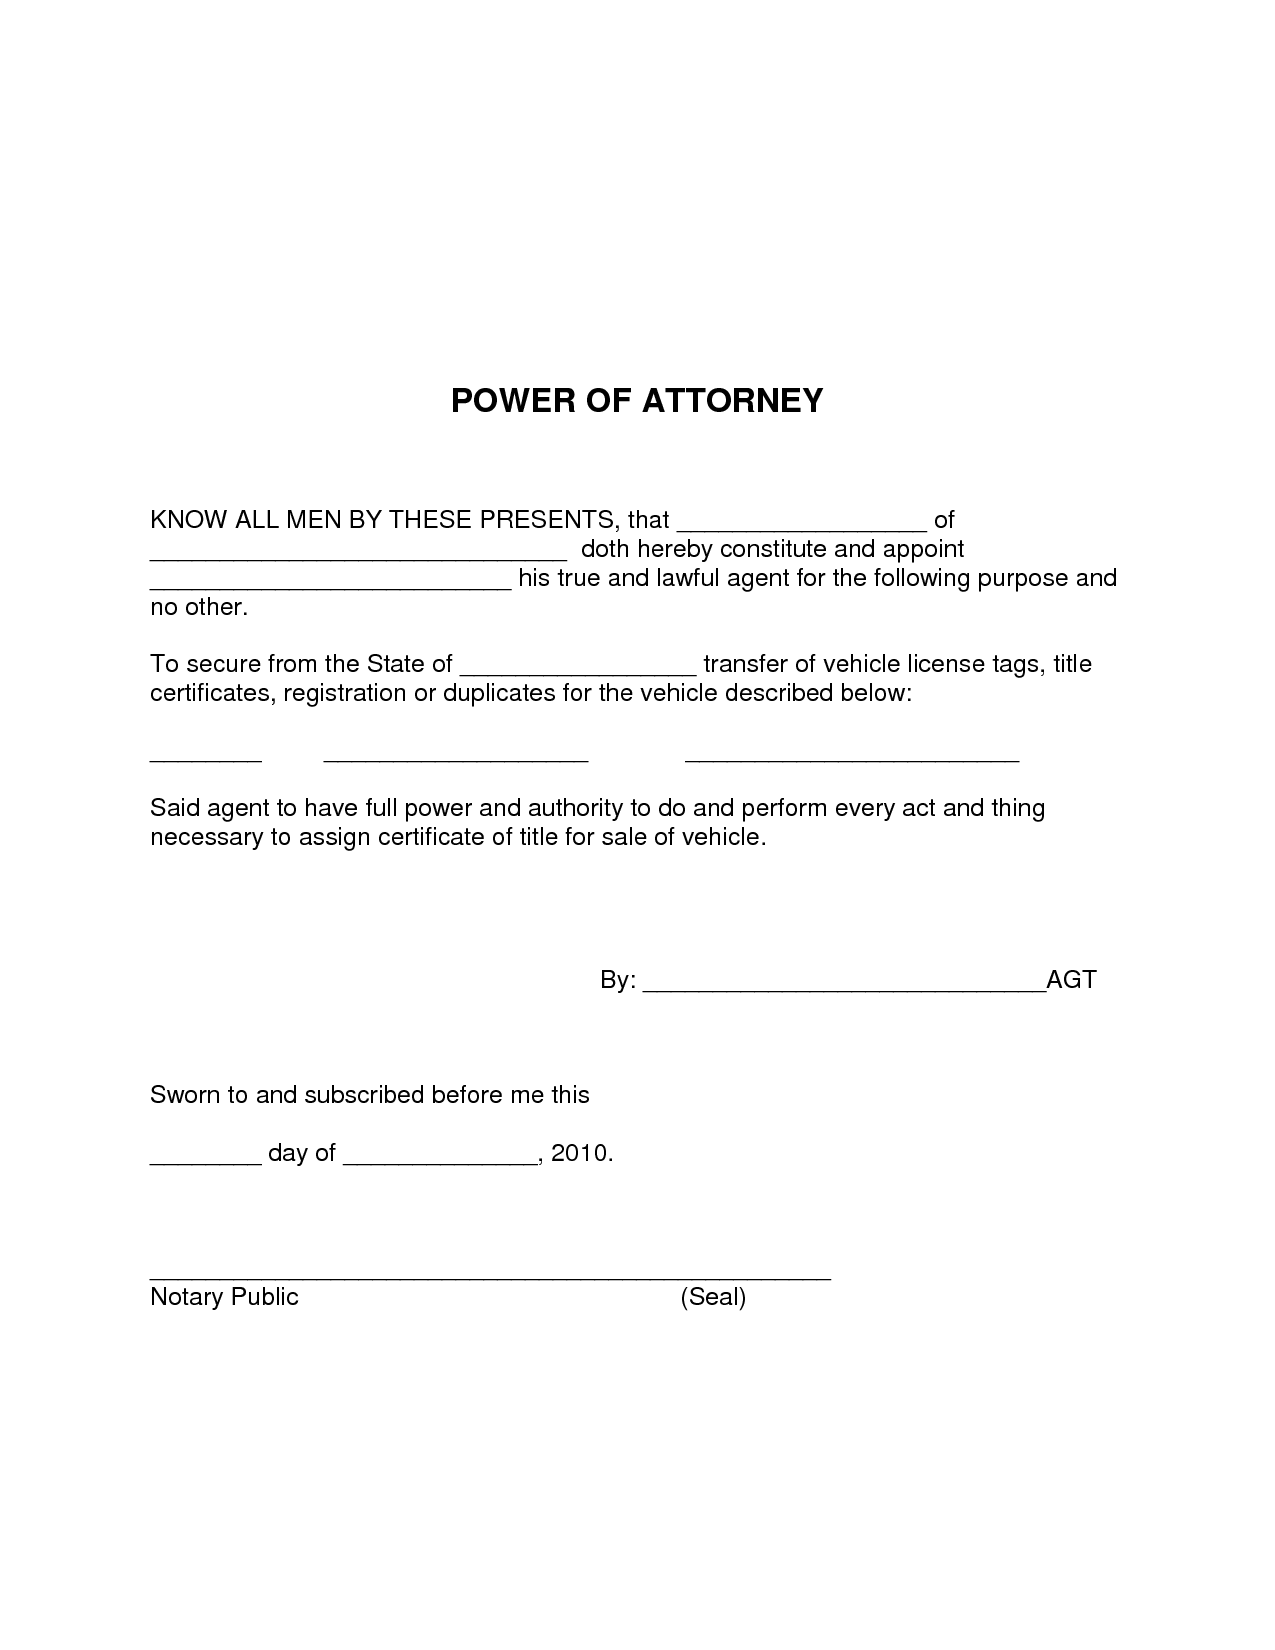 Simple Power Of Attorney Template Charlotte Clergy Coalition